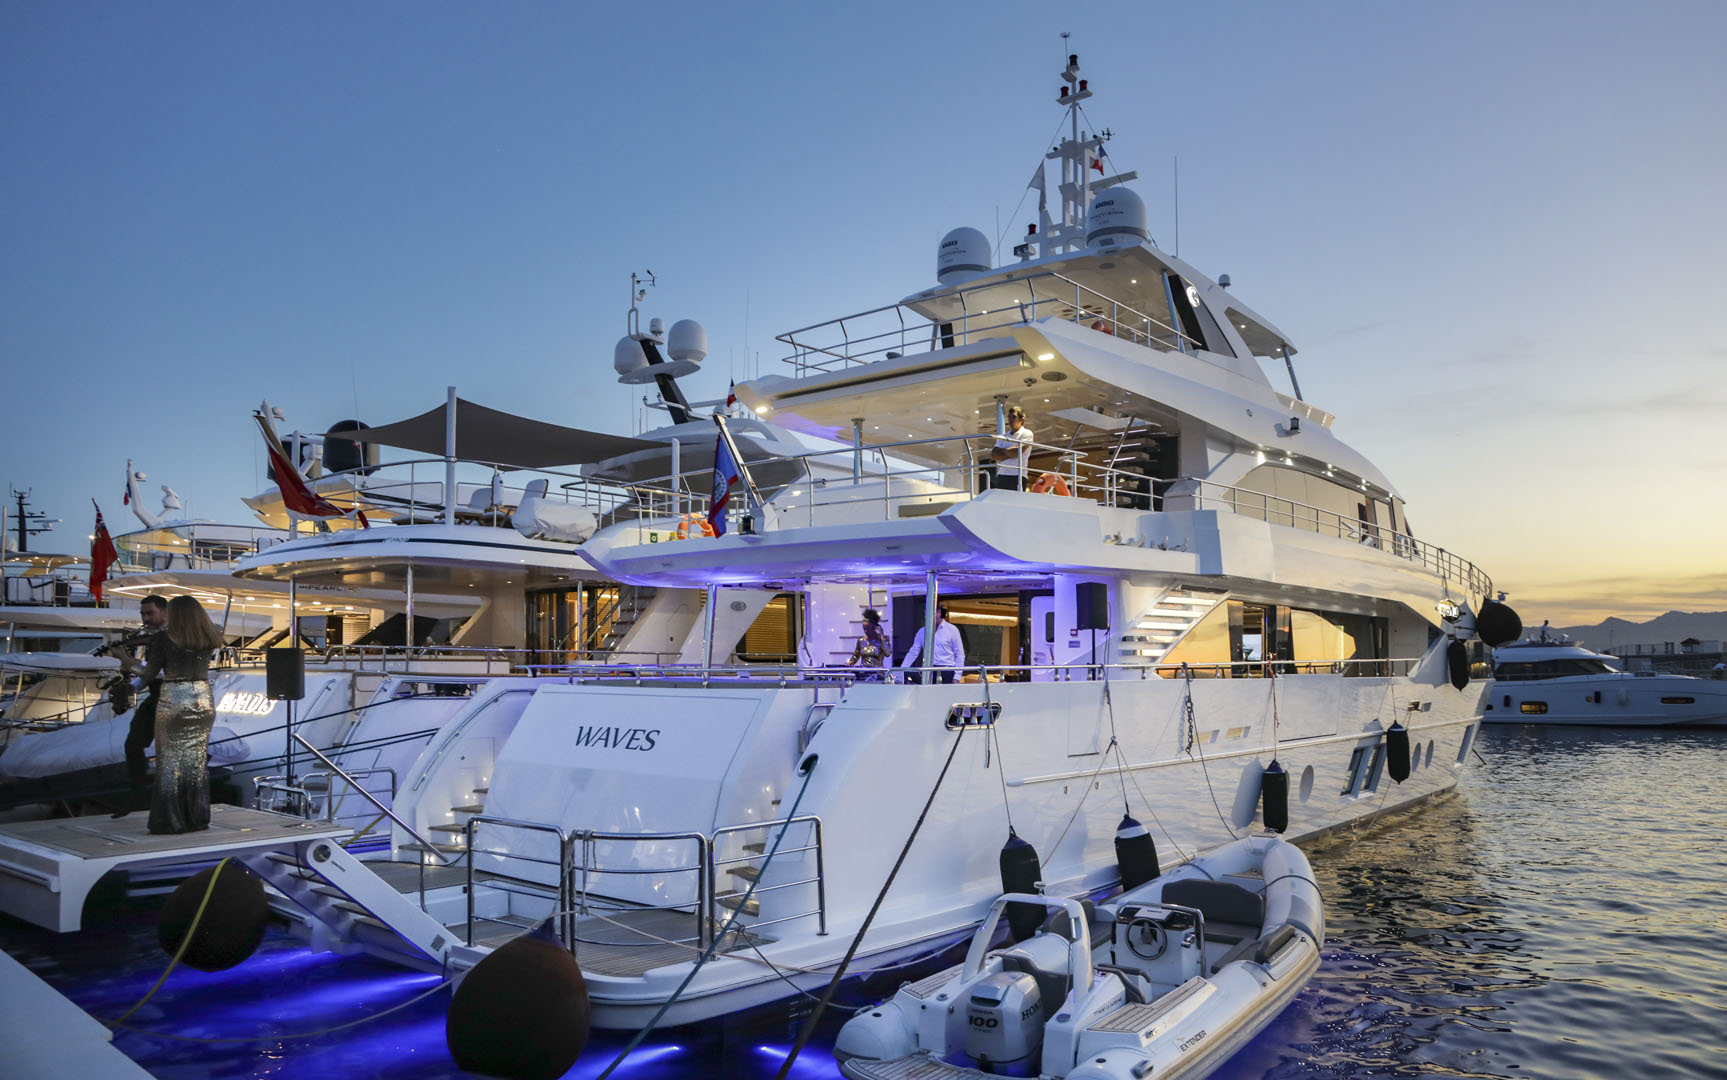 Majesty Yachts in Cannes Yachting Festival 2019 Day 4 (18)